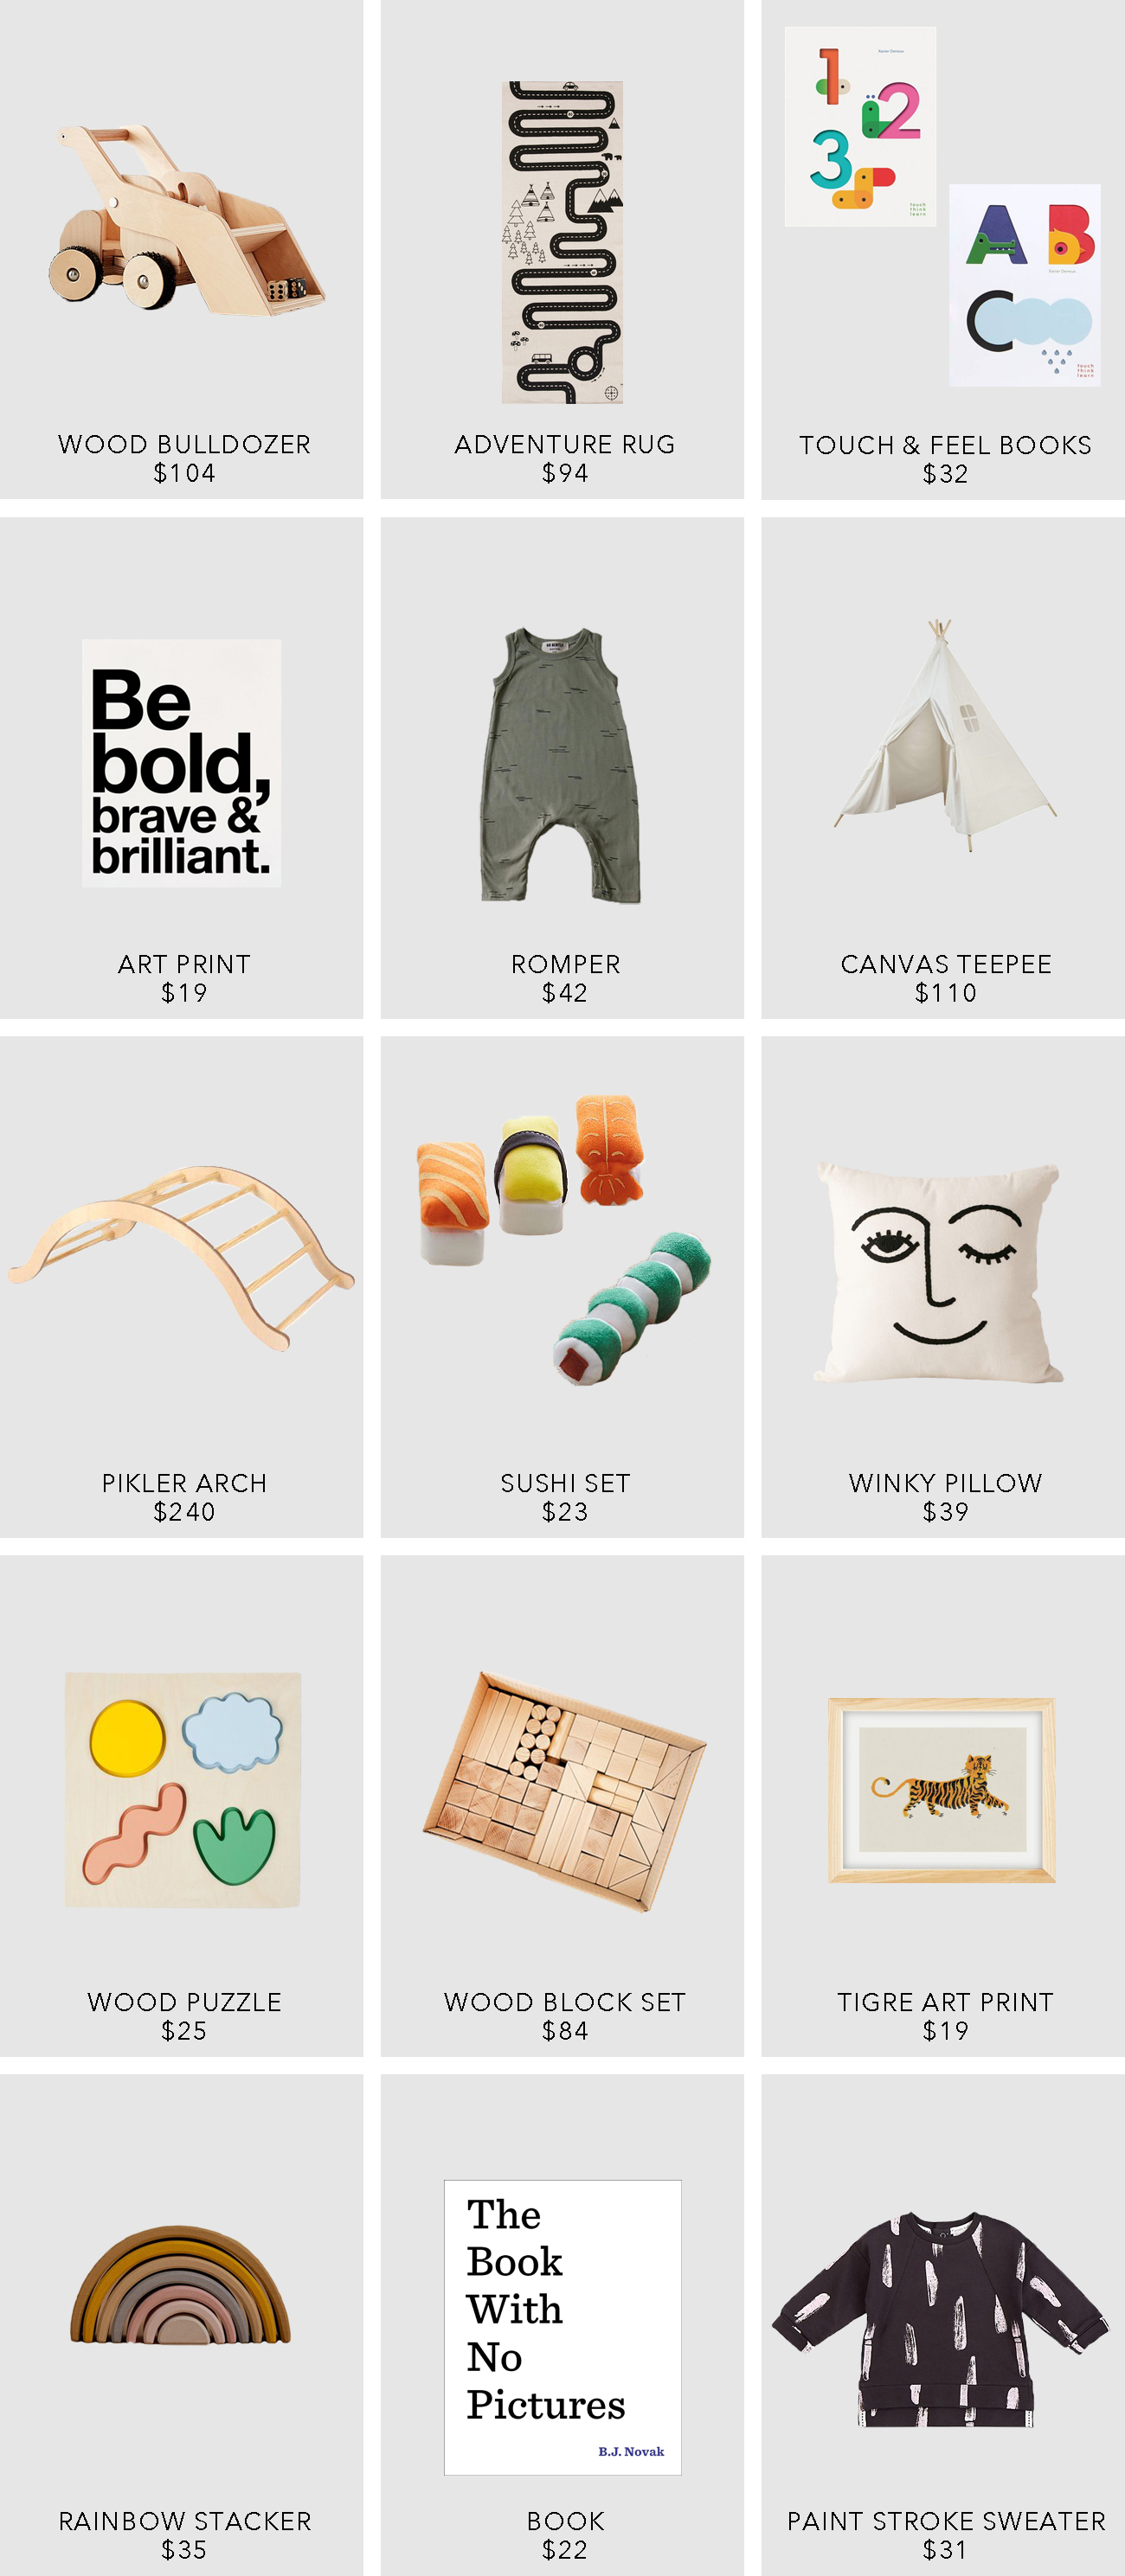 holiday-gift-ideas-12-18months.jpg